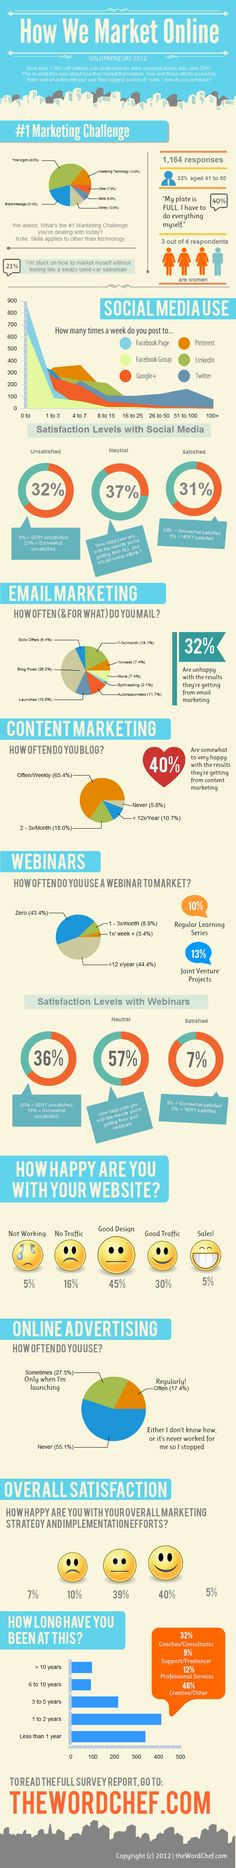 "Solopreneurs-Online-Marketing-Survey-2012 Infographic ""How We Market Online: What Works, What Doesn't"""